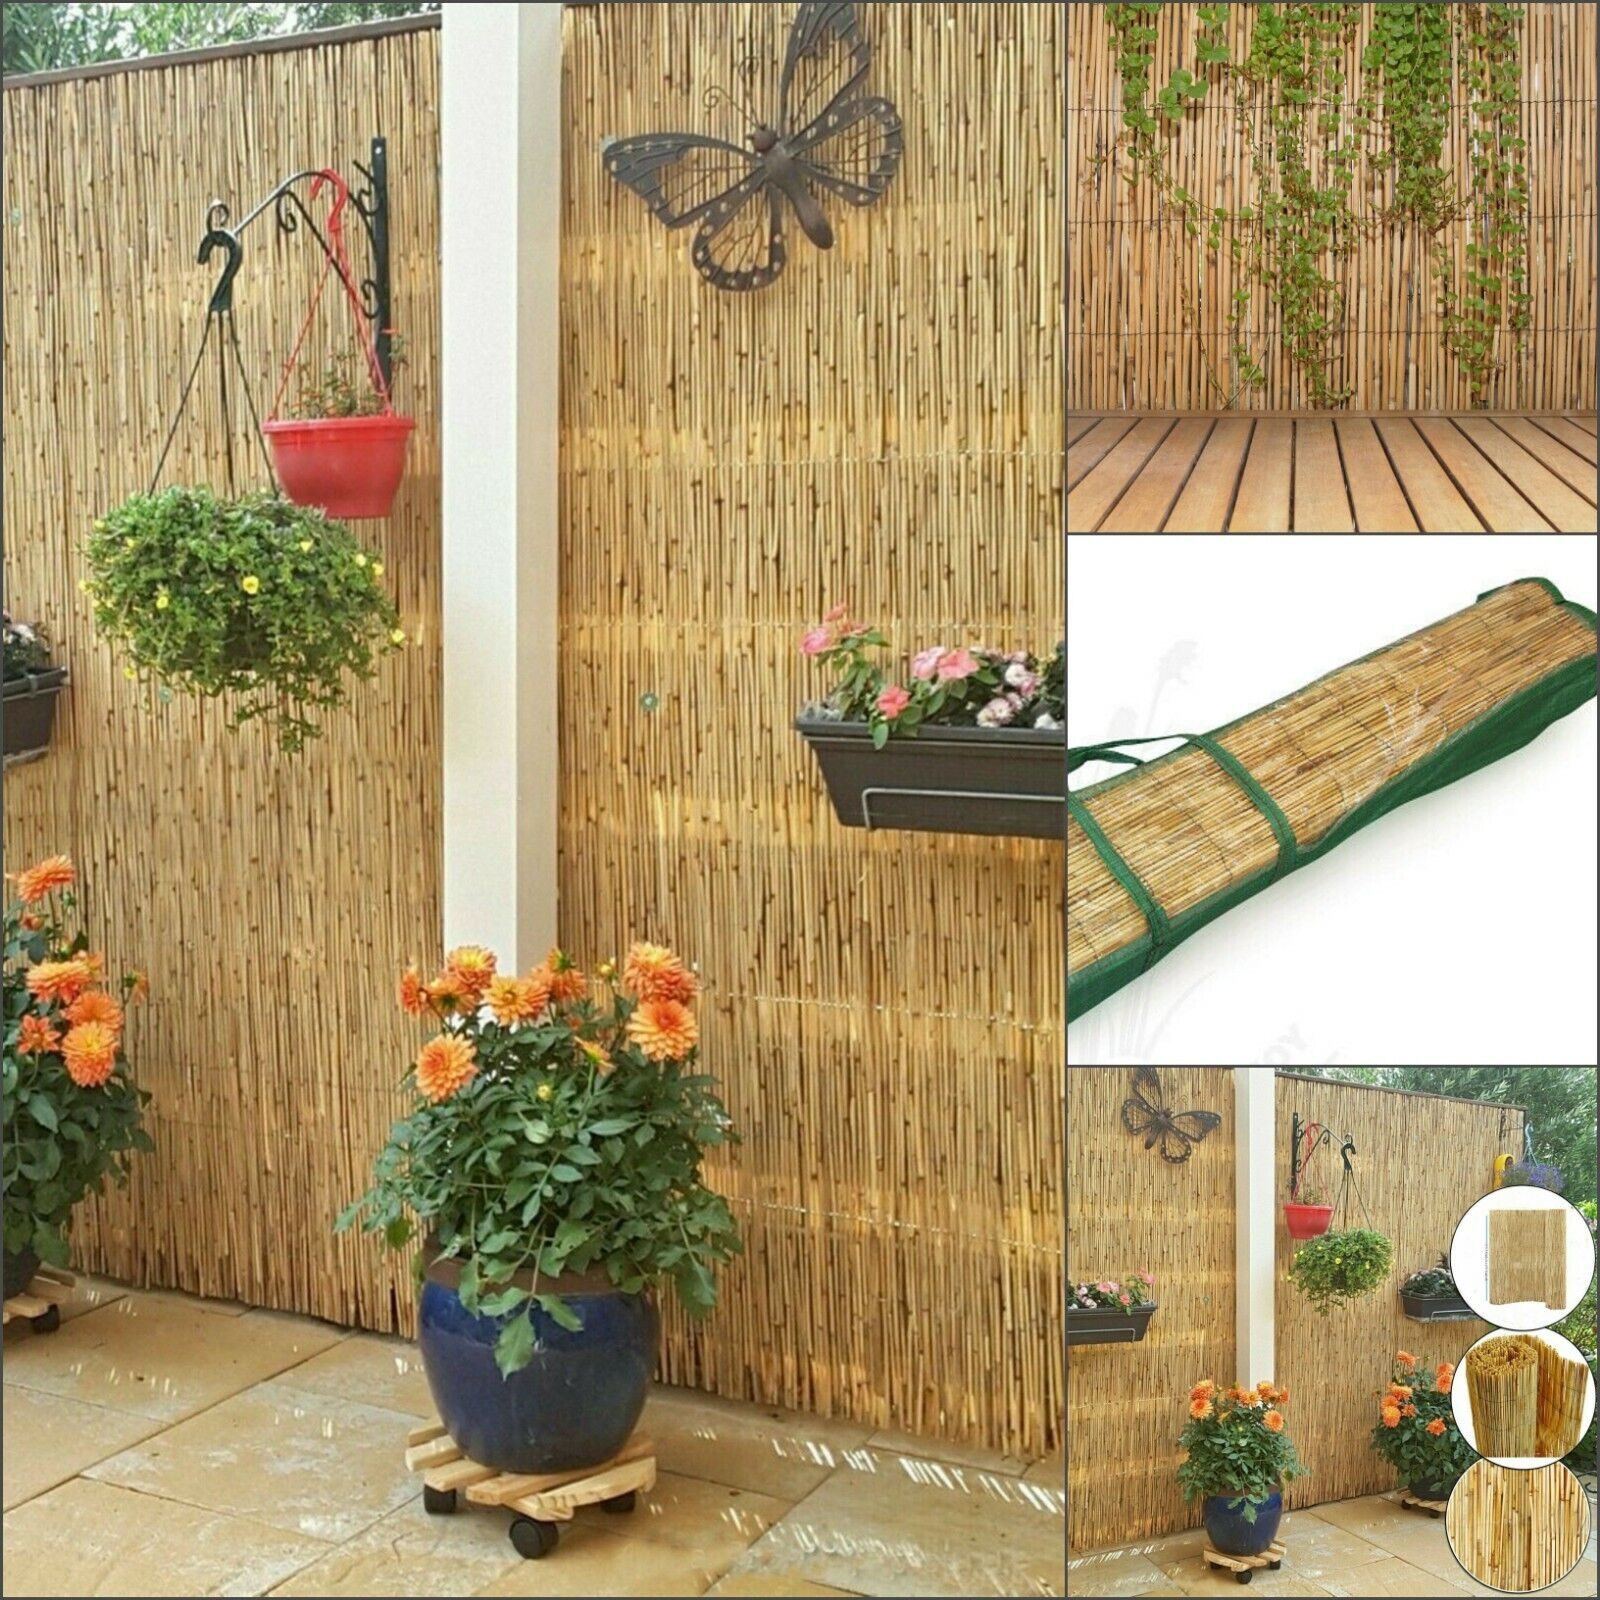 garden fence - Natural Peeled Reed Fence Screening Garden Privacy Wind Break Wall Fencing 4m